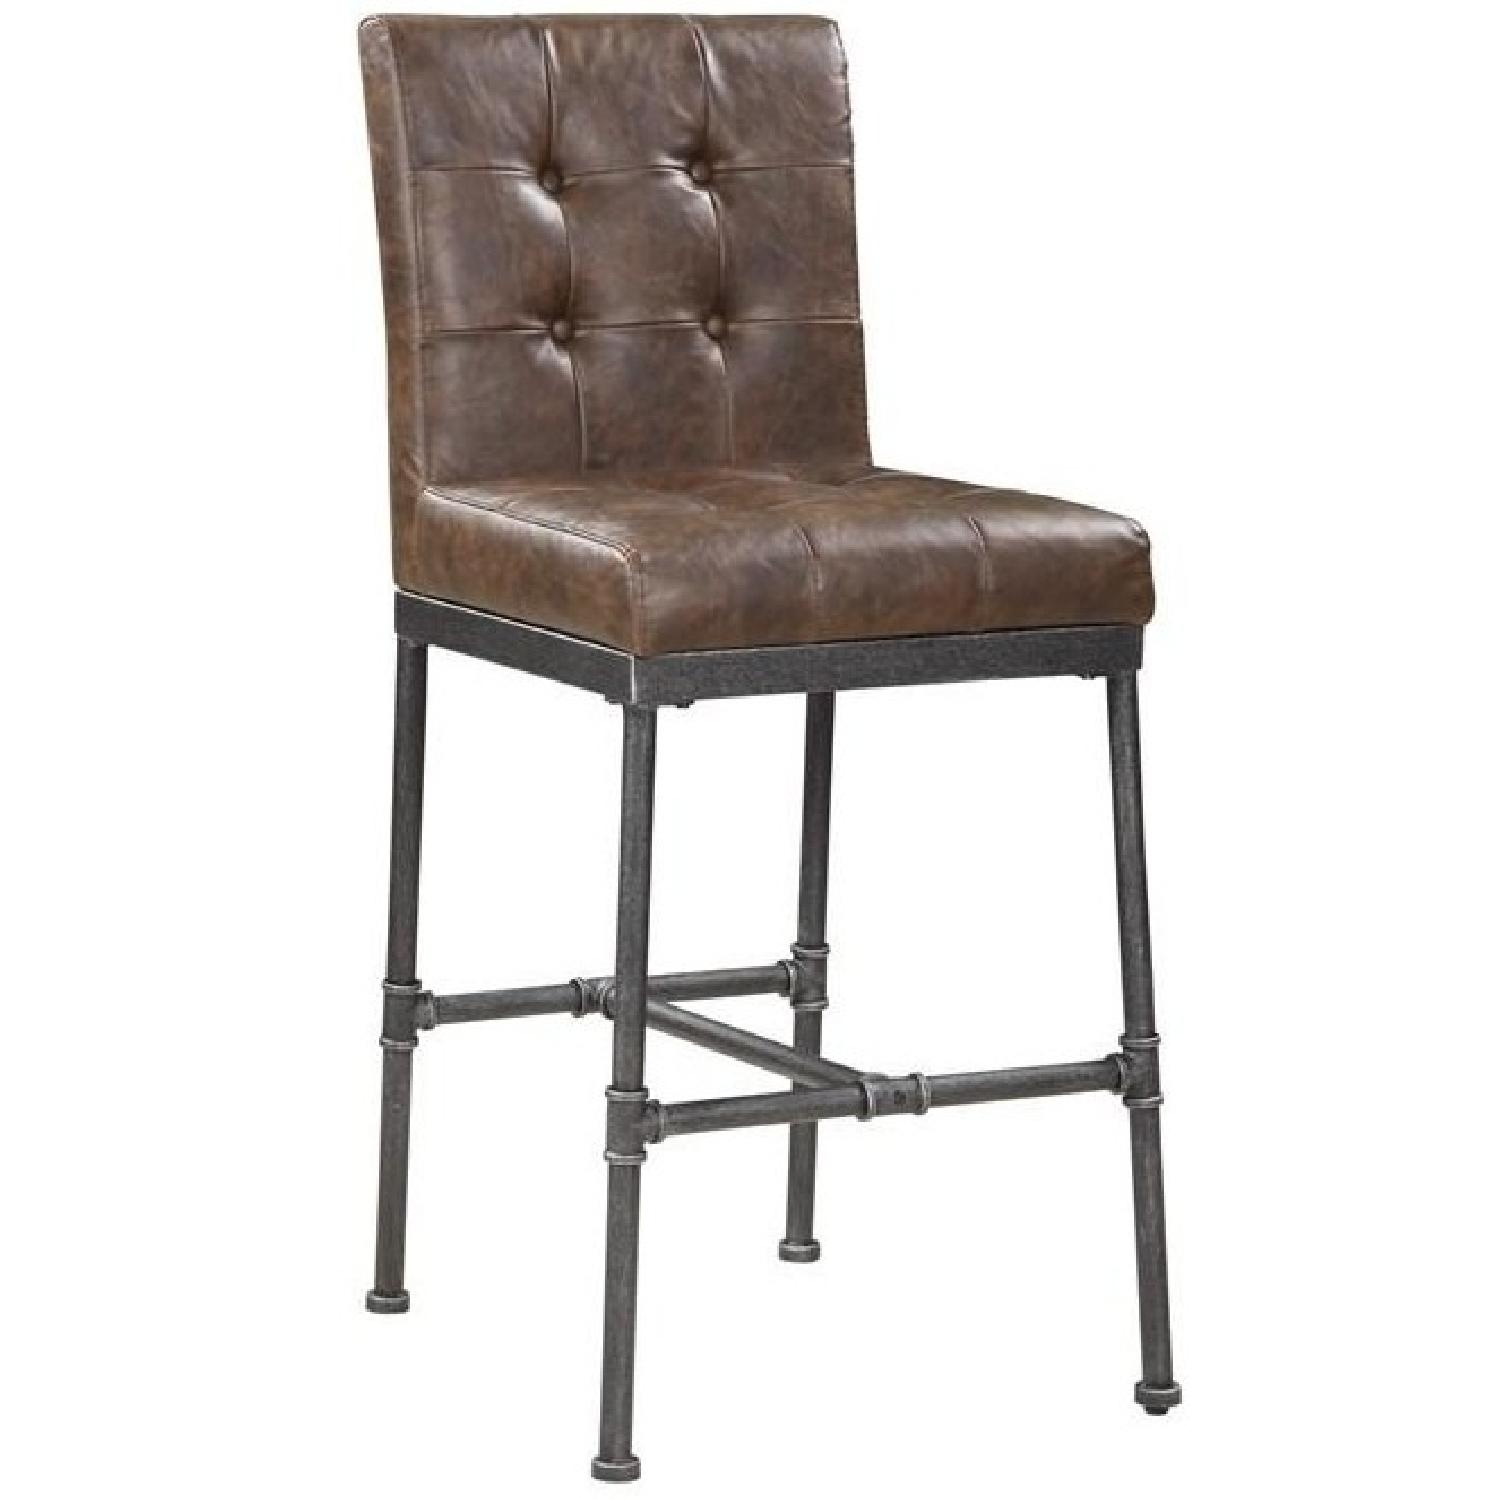 Bar Chair in Padded Brown Leatherette Upholstery - image-4